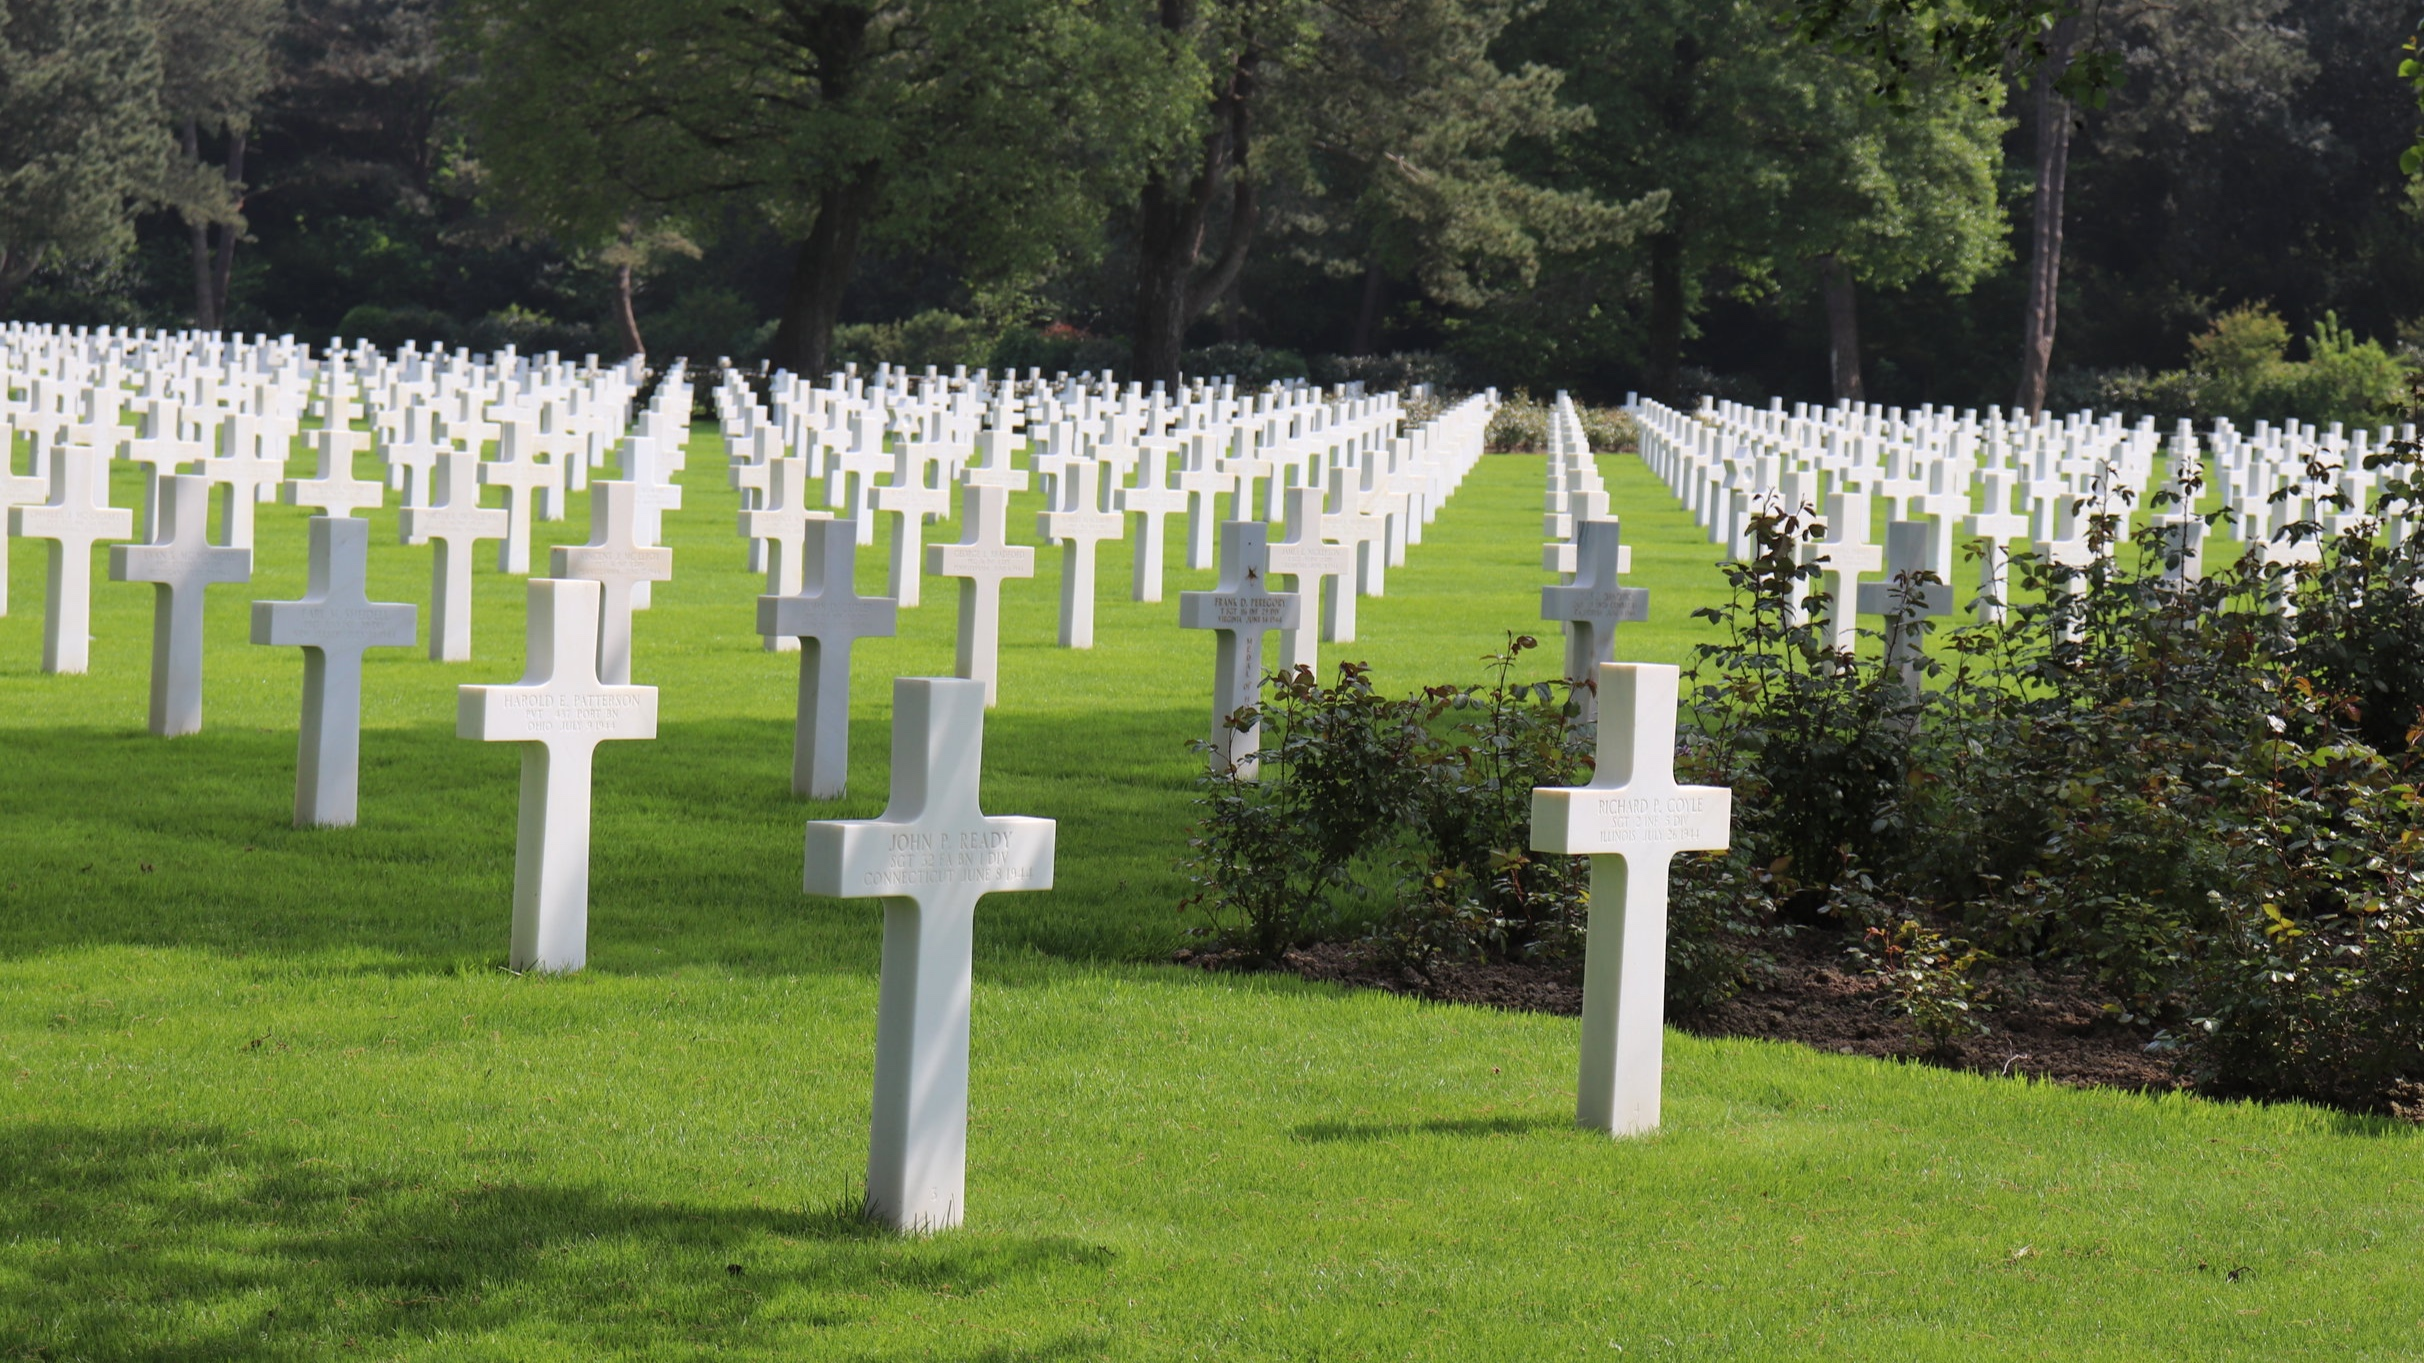 A view of just some of the rows of graves.